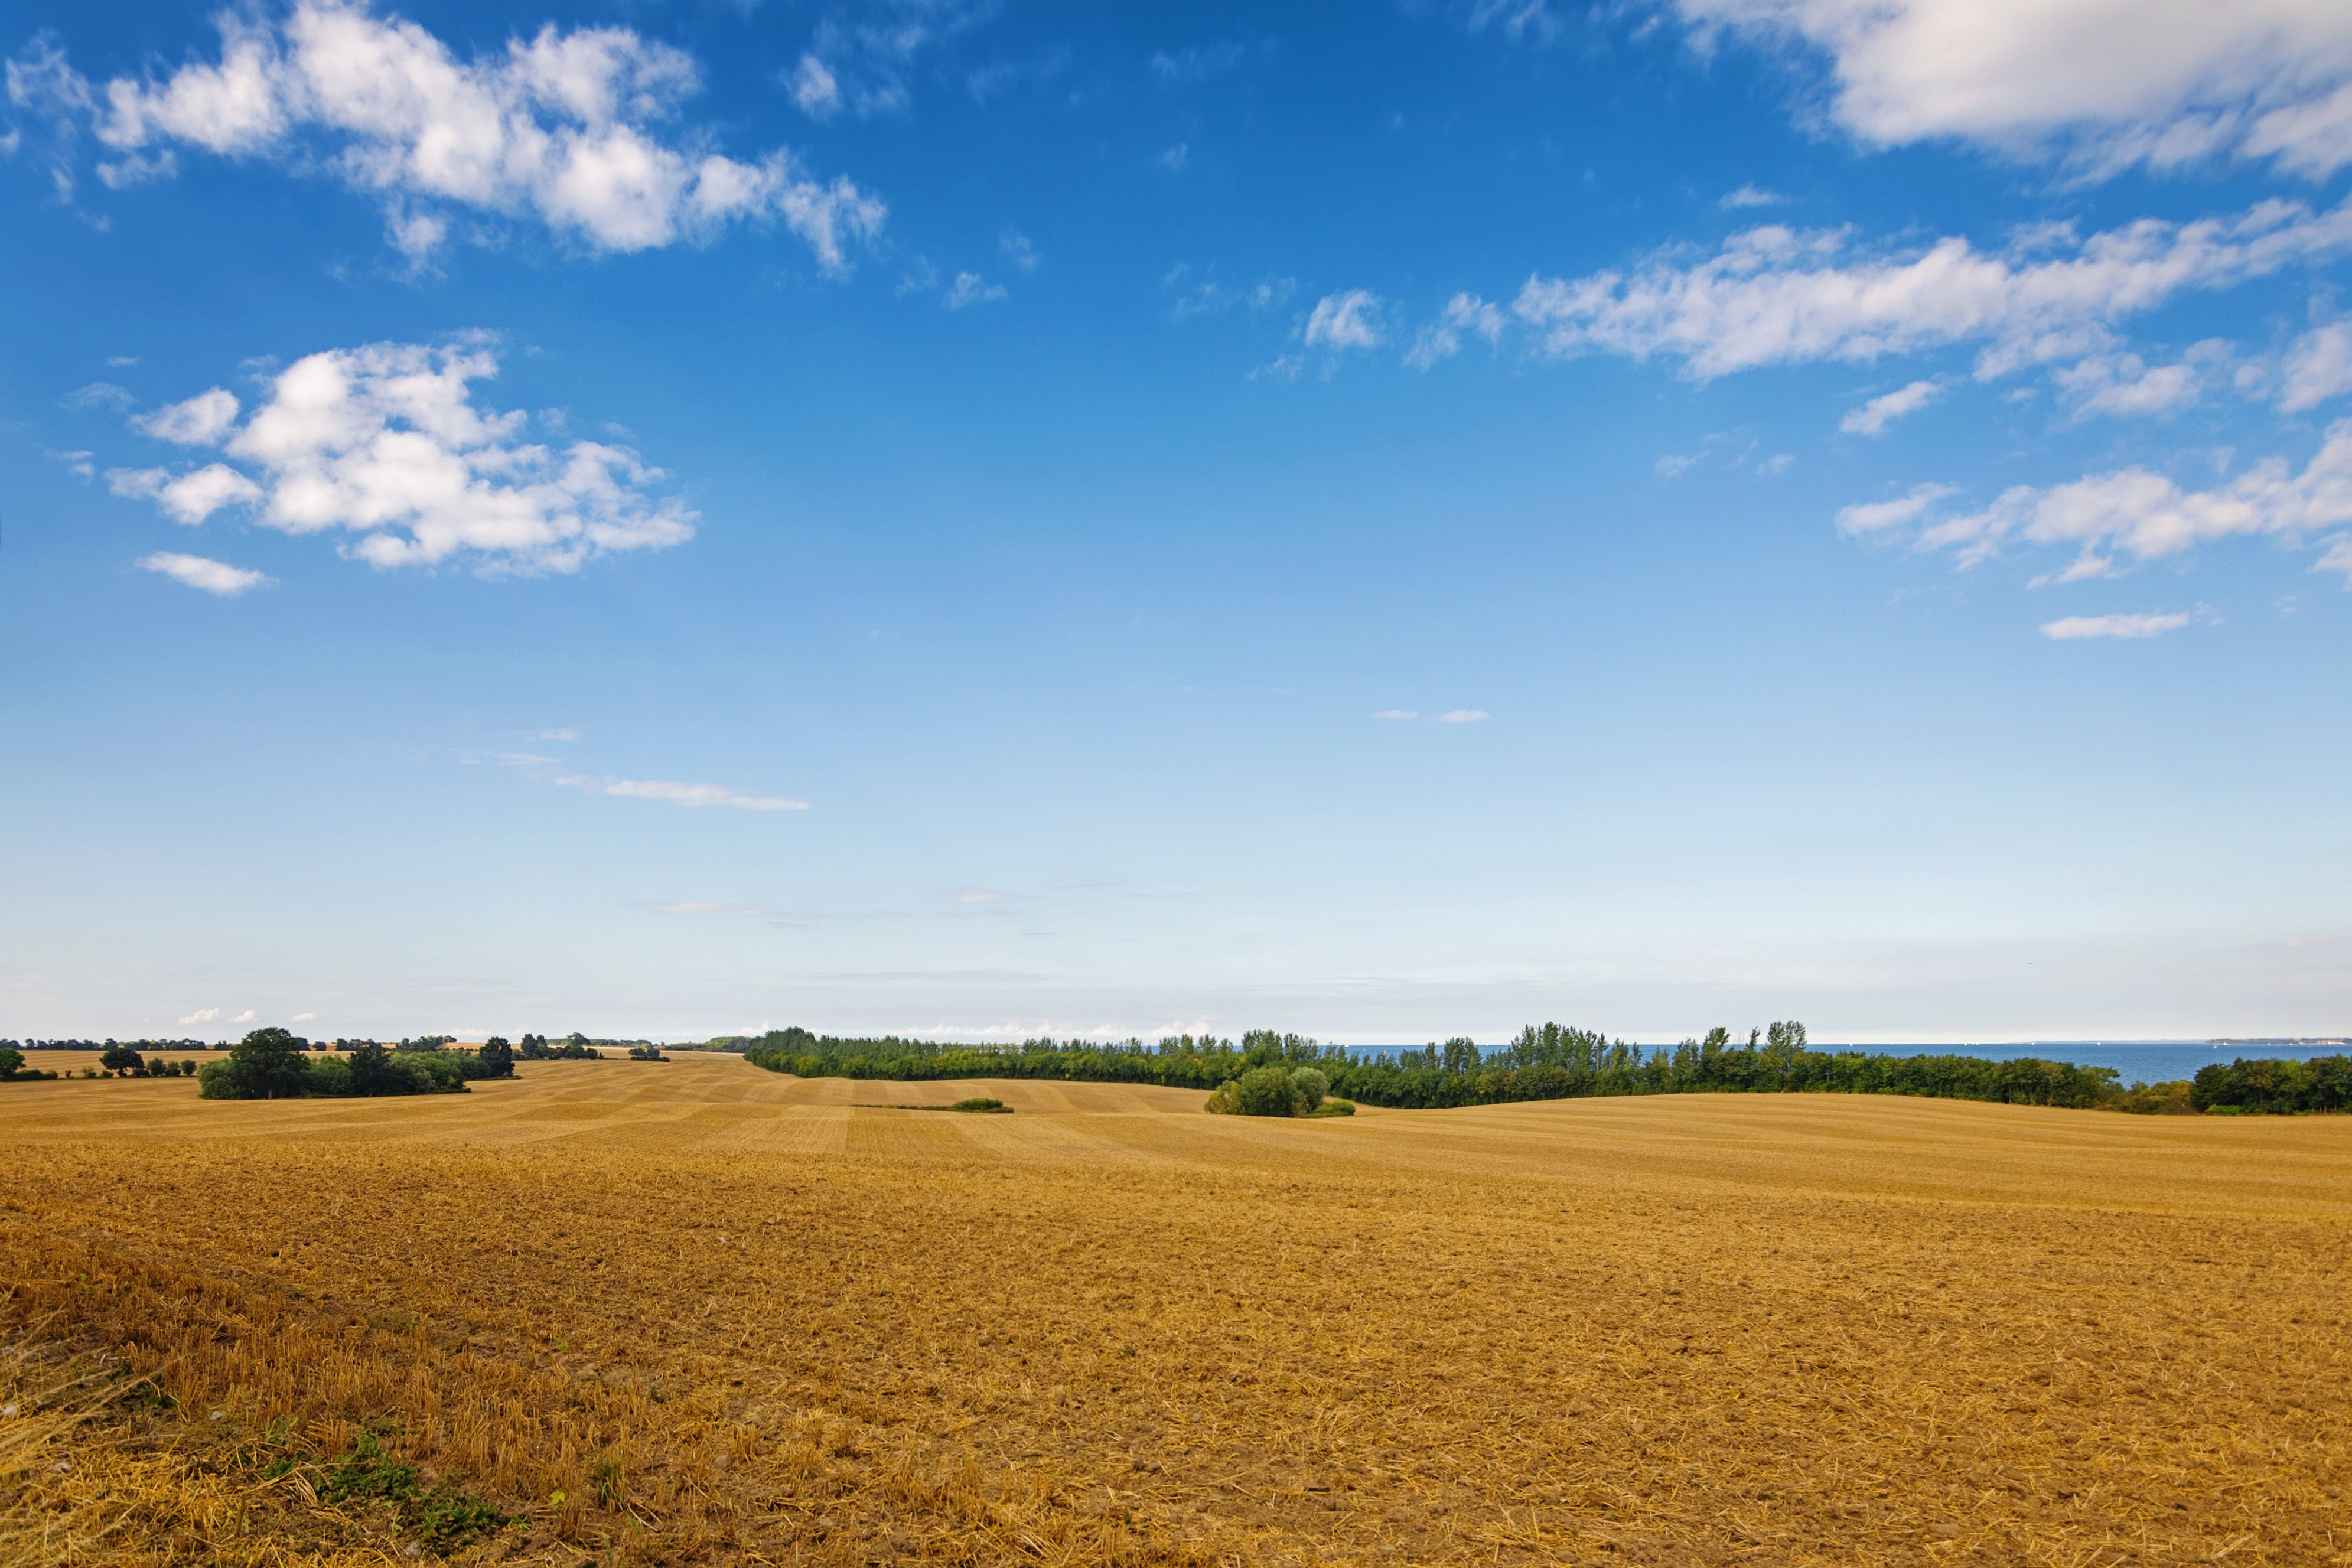 agriculture, arable, clouds